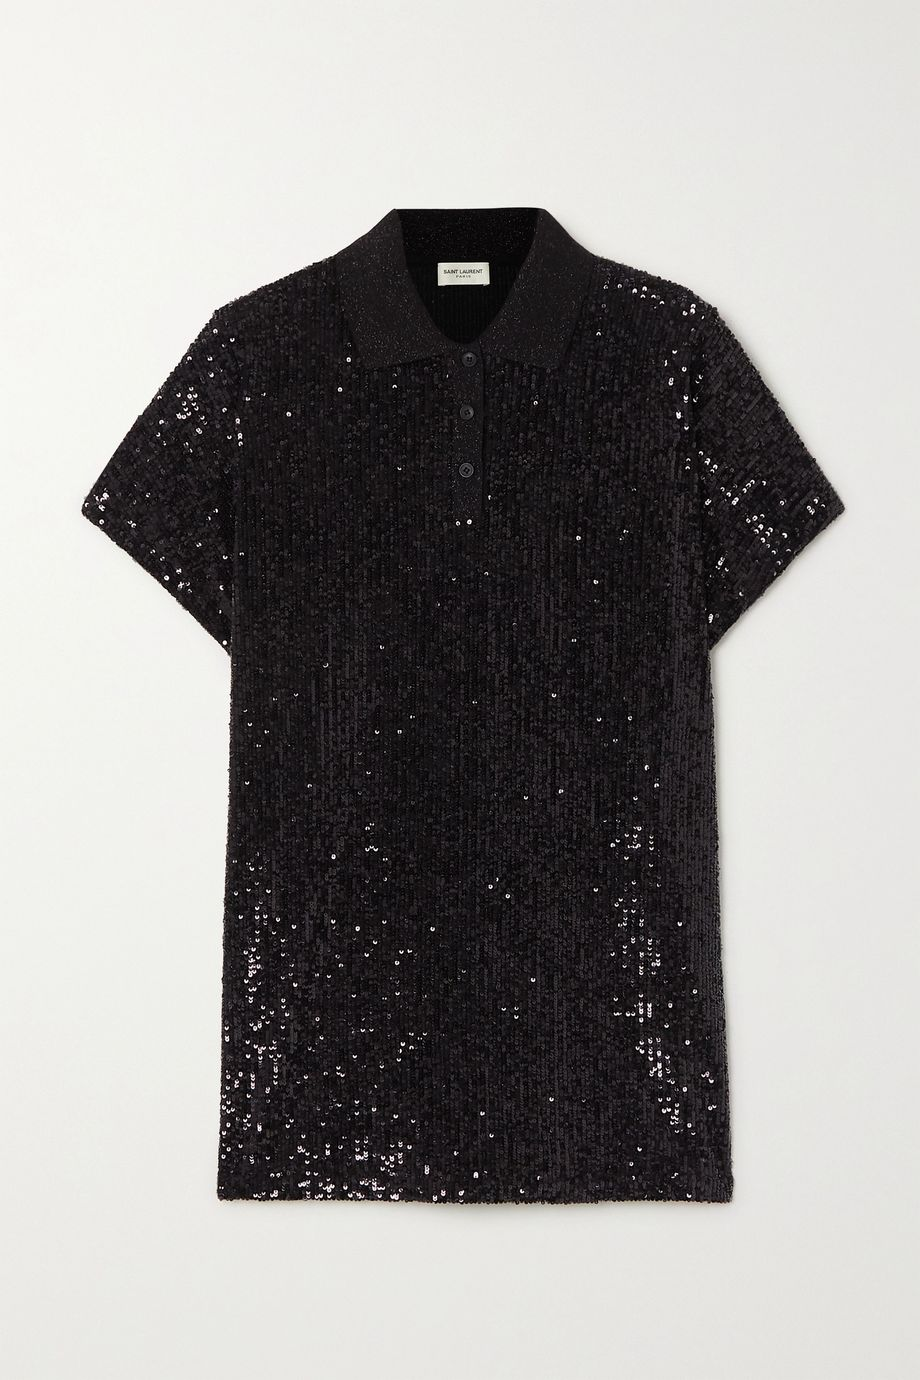 SAINT LAURENT Sequined cotton-blend jersey polo shirt